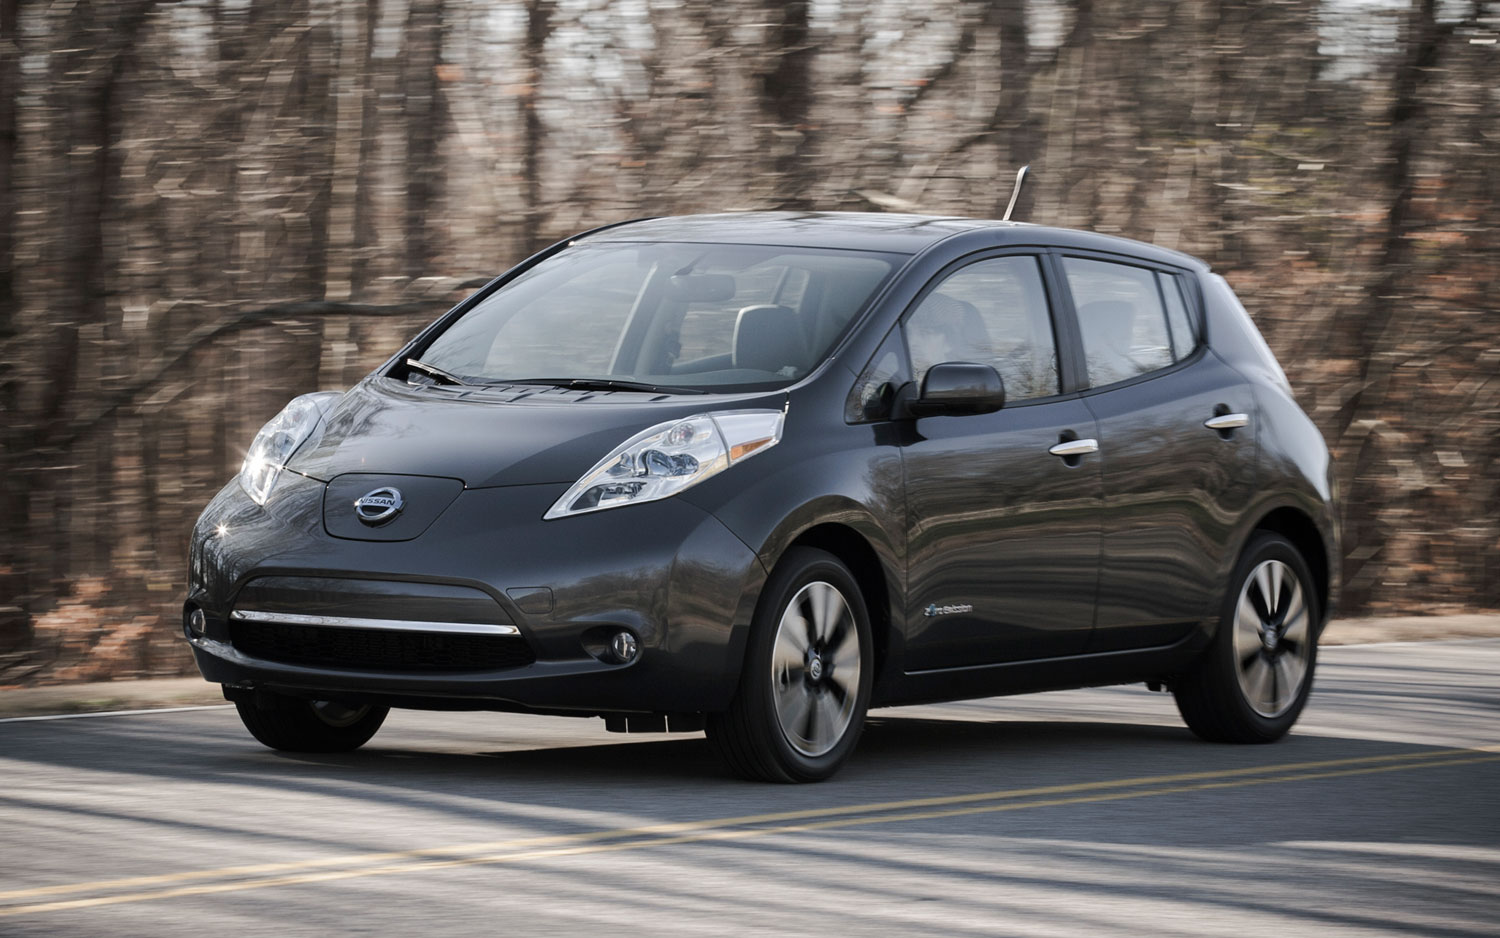 2013 Nissan Leaf Front Three Quarter Motion1